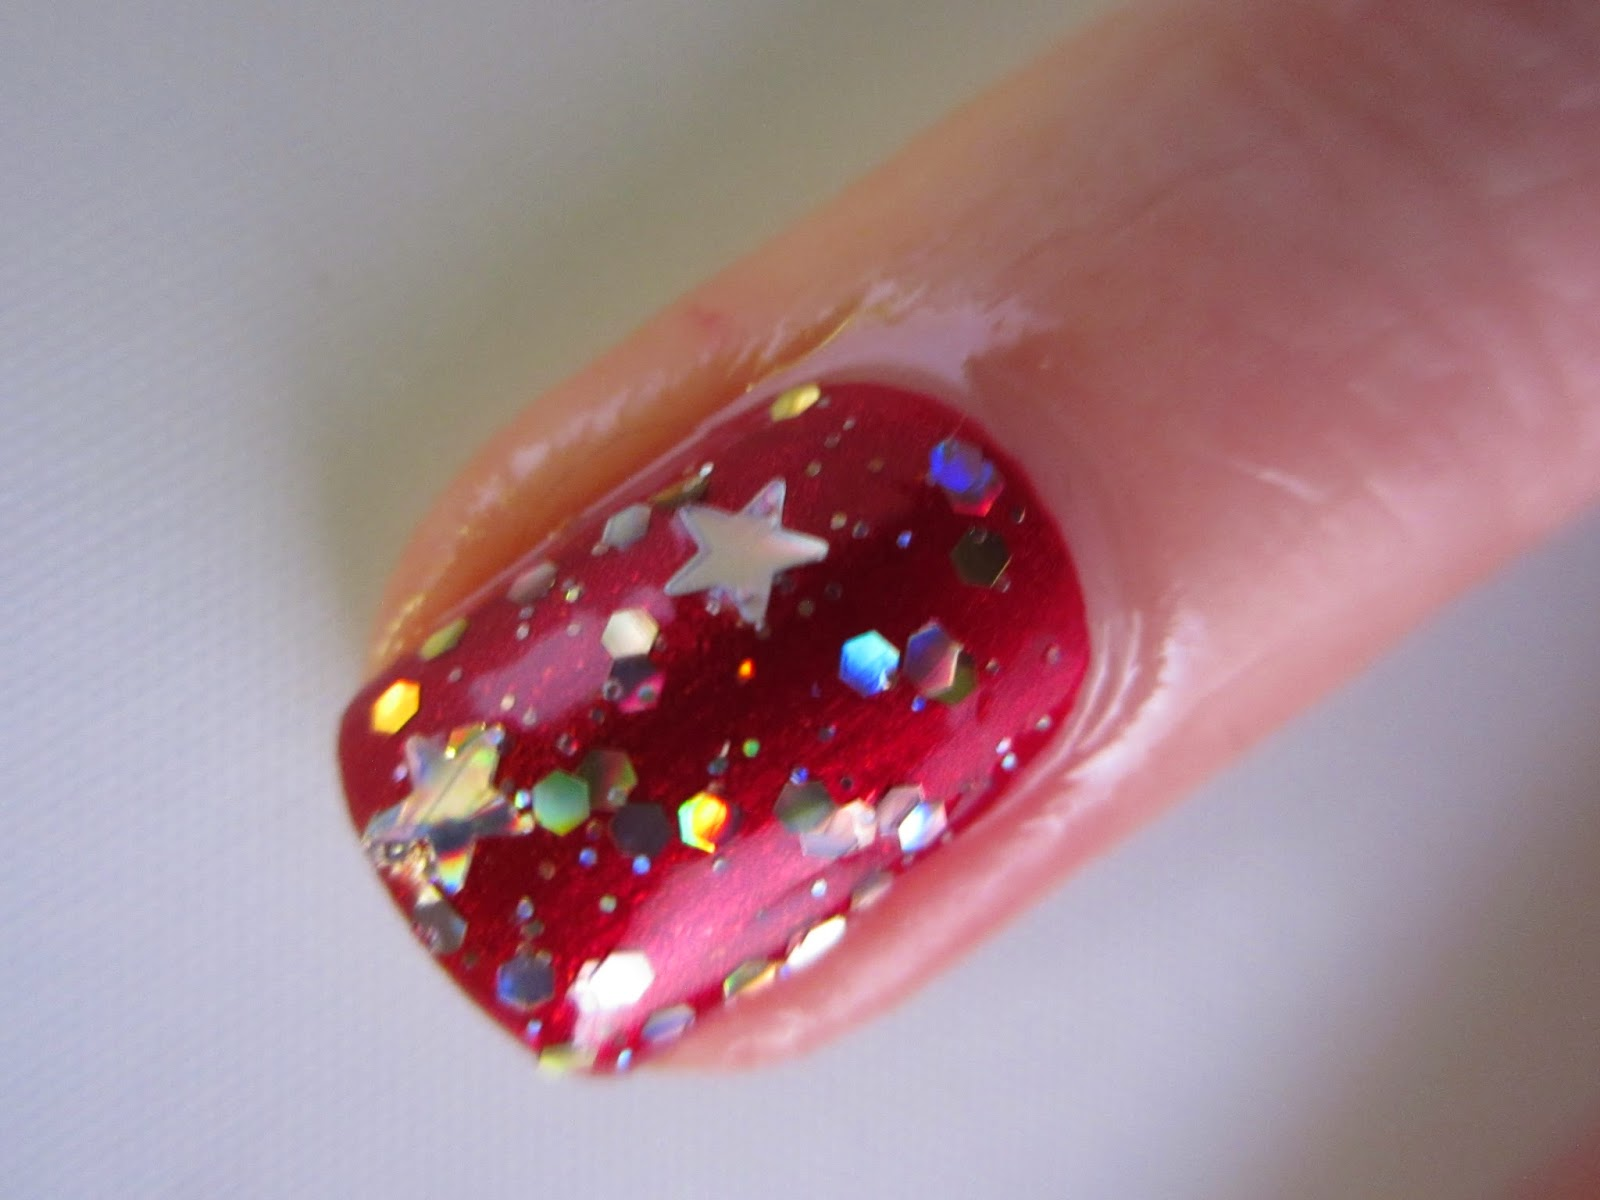 Sinful-colors-red-nail-polish-sugar-sugar-Barry-M-Starlight-gold-holo-stars-glitter